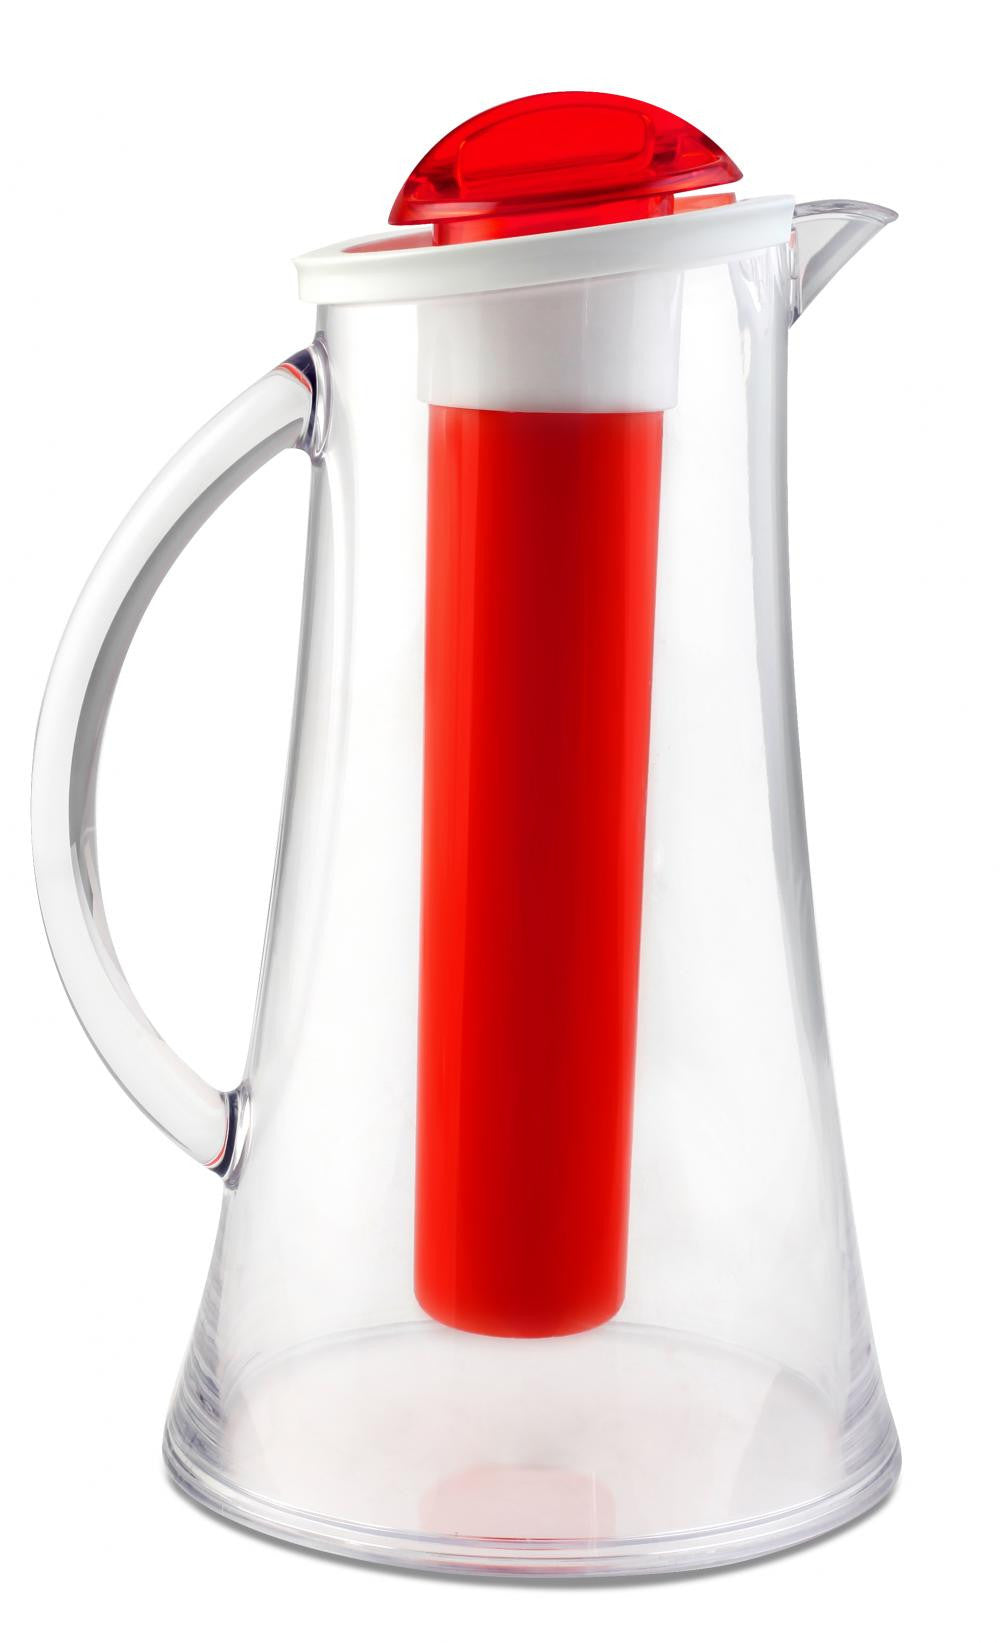 Vialli Design Pitcher 2.1L with Ice Tube, Red